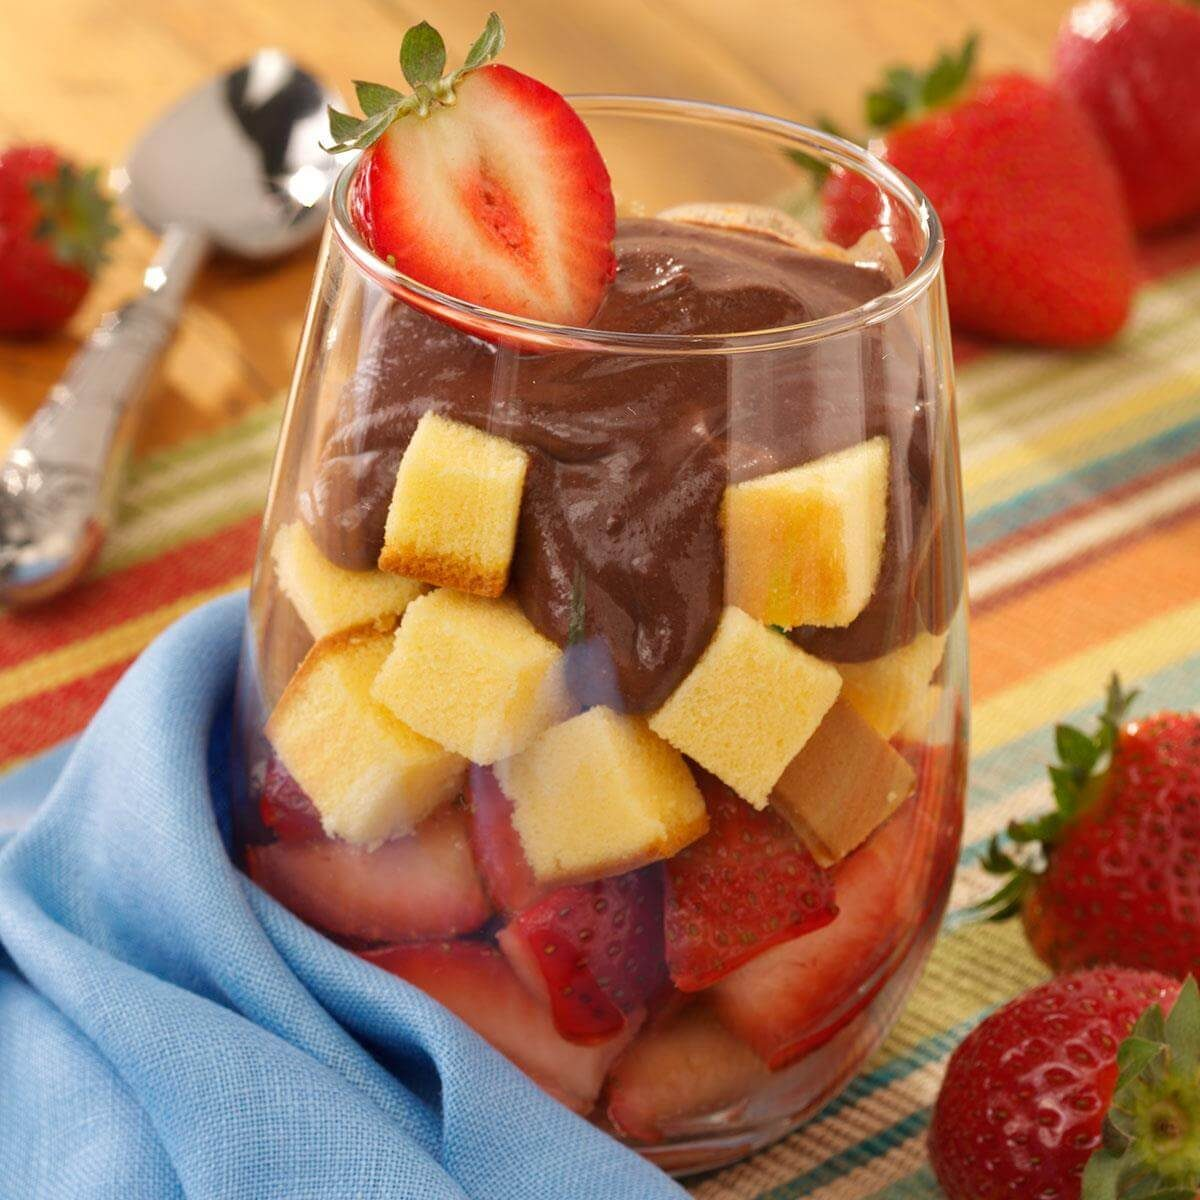 Top 10 Trifle Recipes: Individual Strawberry Trifles Recipe